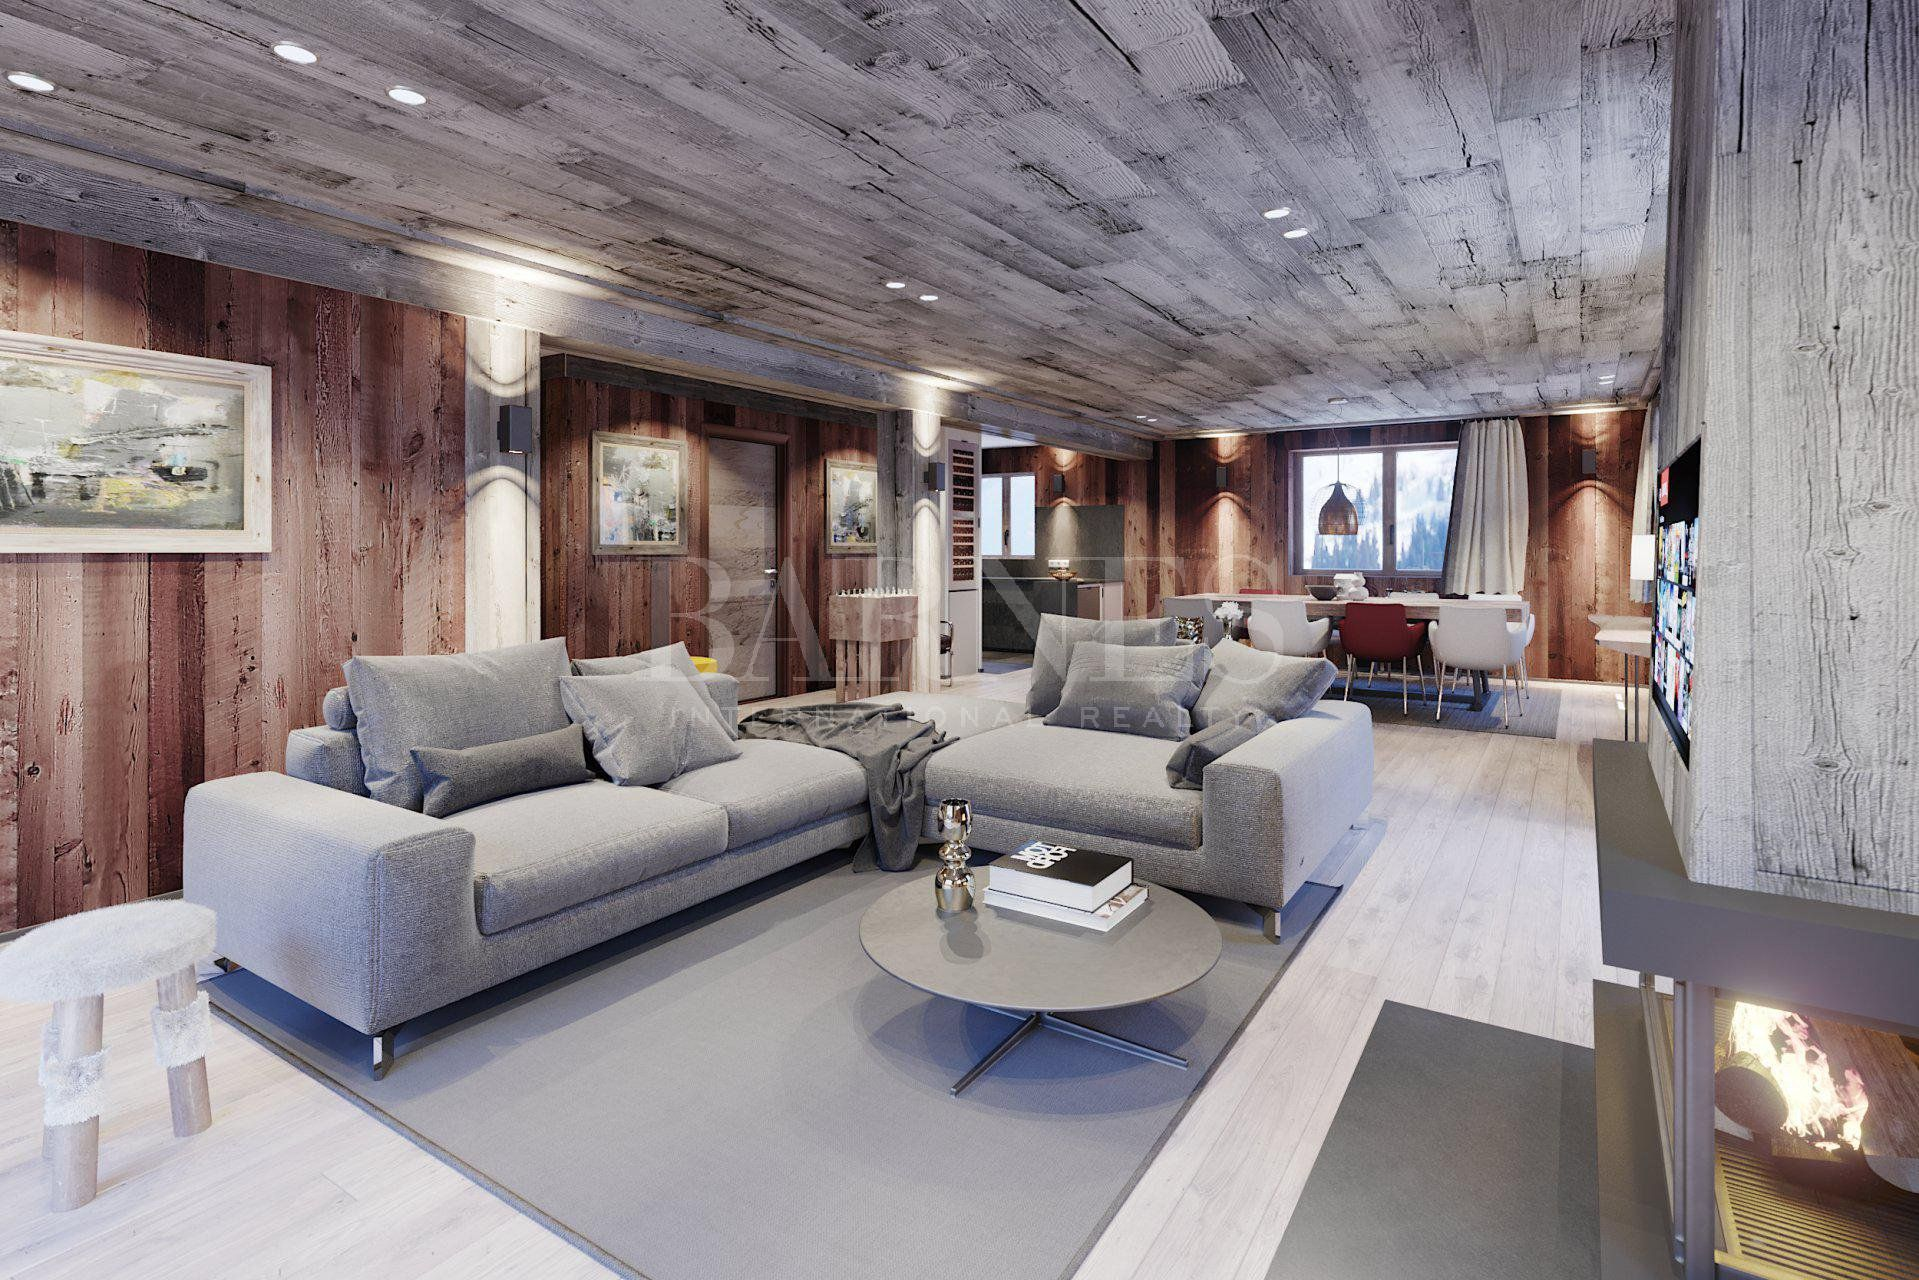 Stunning renovated chalet